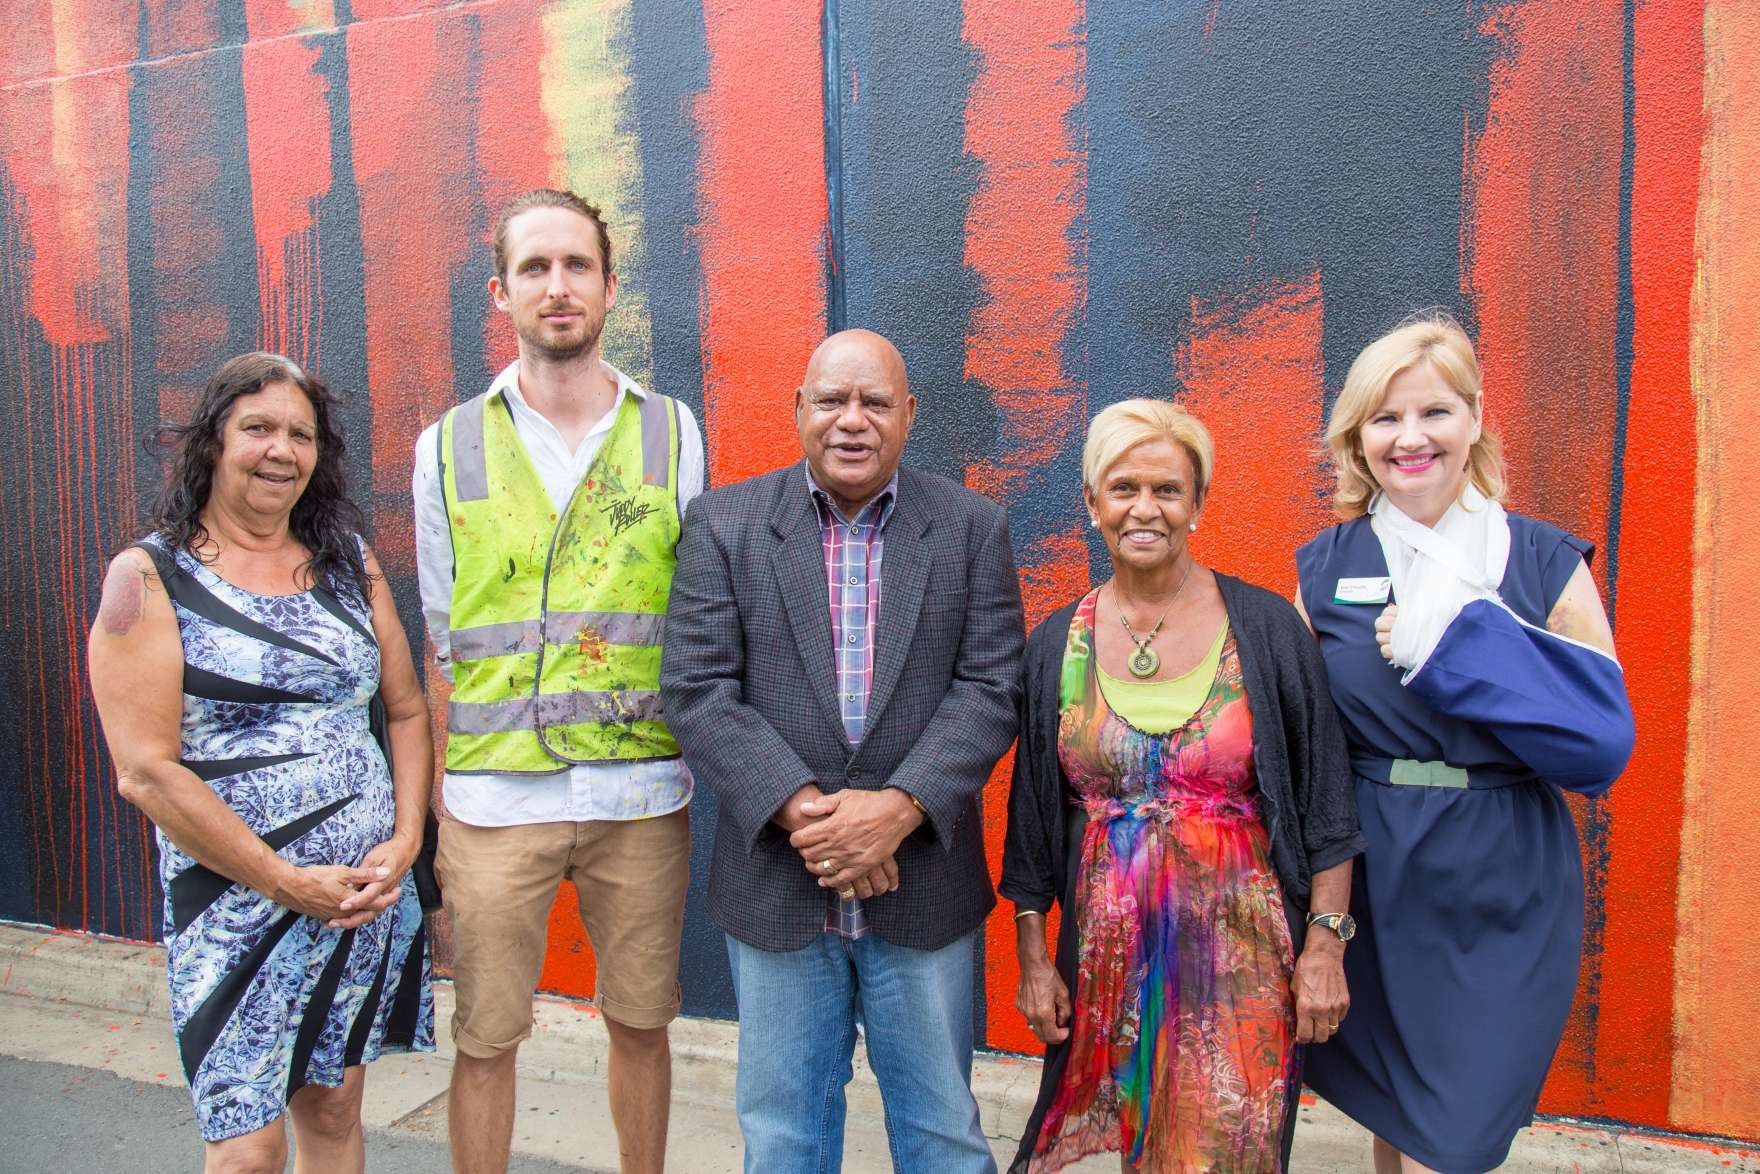 (L-R) Merle Miller (Rumbalara Co-op, Elders Committee Member), Adnate (Project artist) Robert Nicholls (Nephew of Sir Douglas Nicholls), Aunty Pam Pedersen (Eldest Daughter of Sir Douglas Nicholls), Cr Kim O'Keeffe (Deputy Mayor, Greater Shepparton City Council) at today's Aboriginal wall art project in Shepparton.